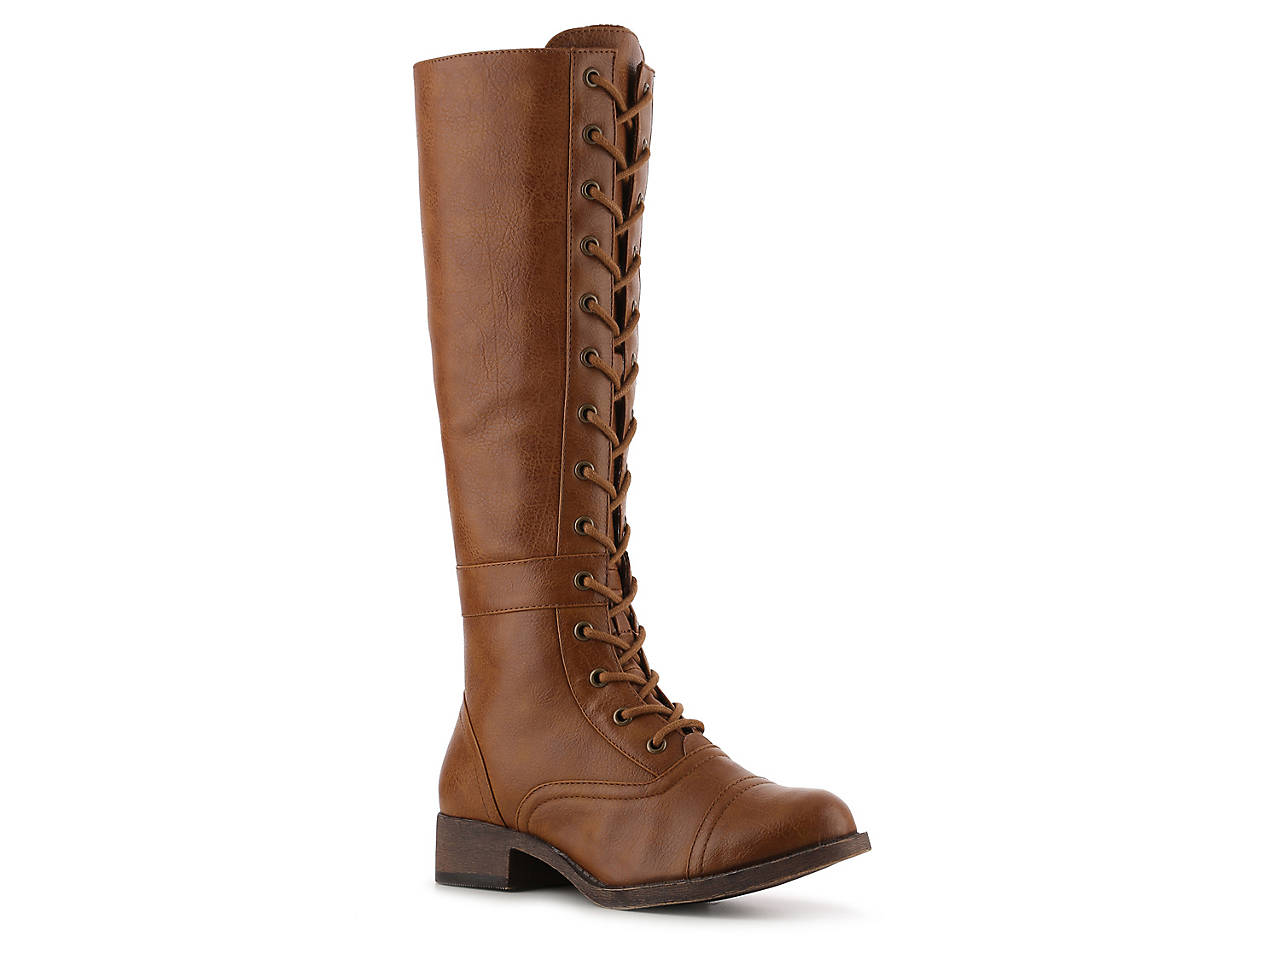 Rocket Dog Womens Black Calypso Boot Boots Lace Up